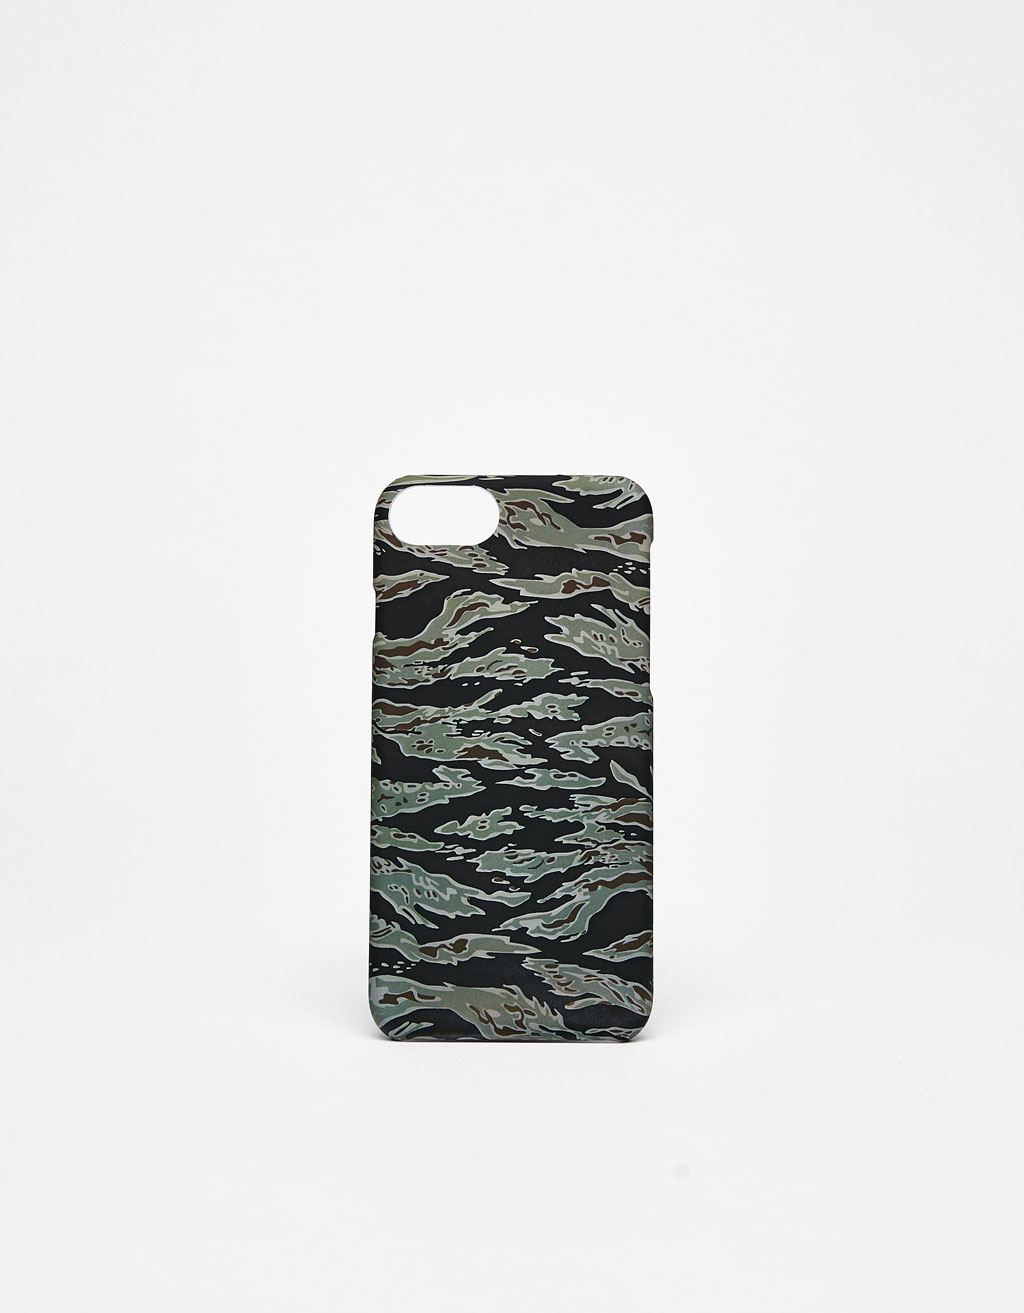 Carcasa animal print iPhone 5/5s